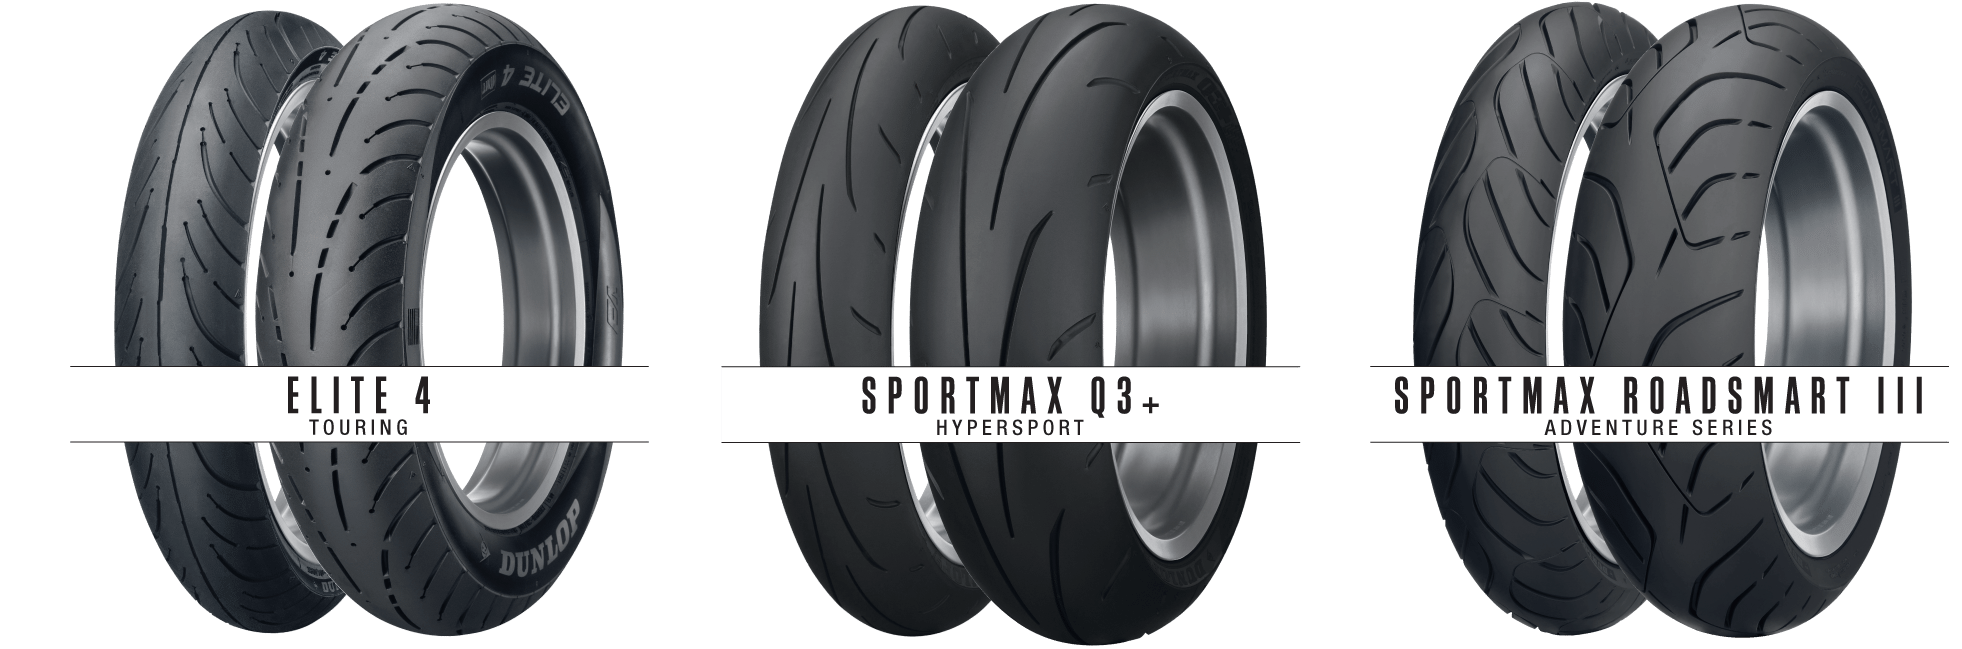 Motorcycle Tire Sizes >> Dunlop Introduces Key New Street Bike Sizes Dunlop Motorcycle